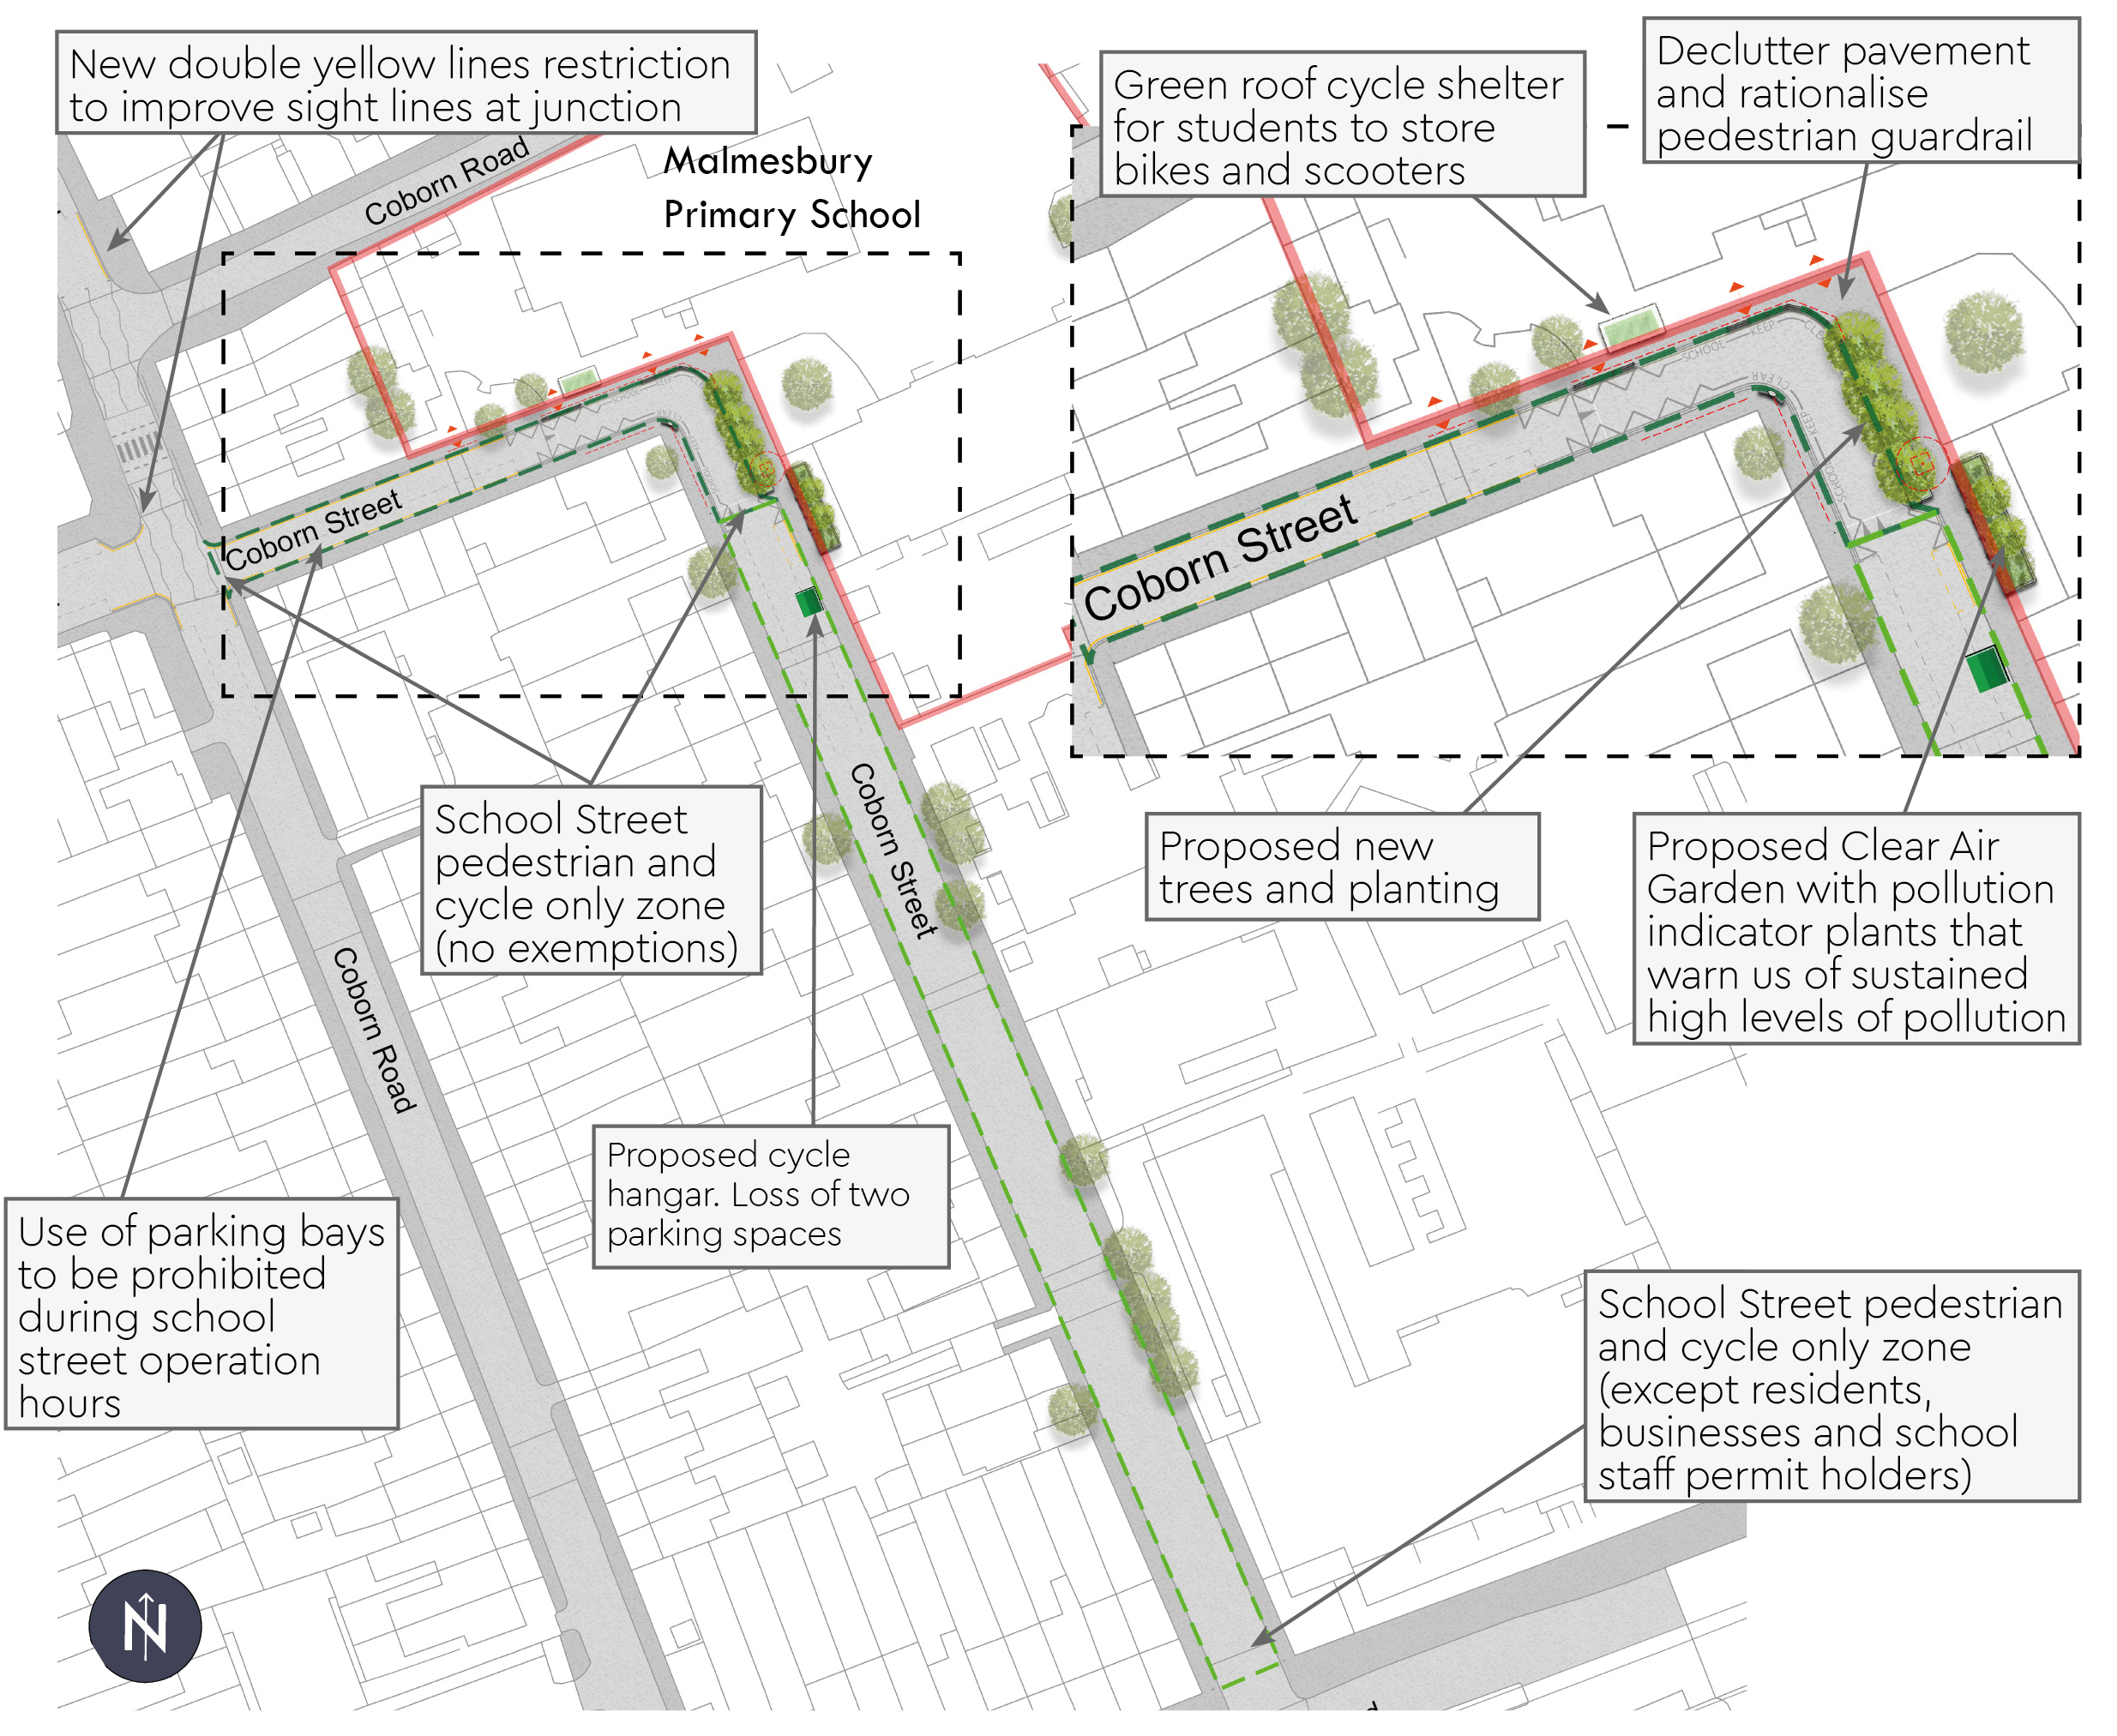 Malmesbury School Street Plan - School Street pedestrian and cycle only zone along Coborn Street (except residents, businesses and school staff permit holders) - Parking bays on Coborn Street prohibited during school street operation hours. - New trees and planting outside of Malmesbury Primary School - Green roof cycle shelter outside of Malmesbury Primary School